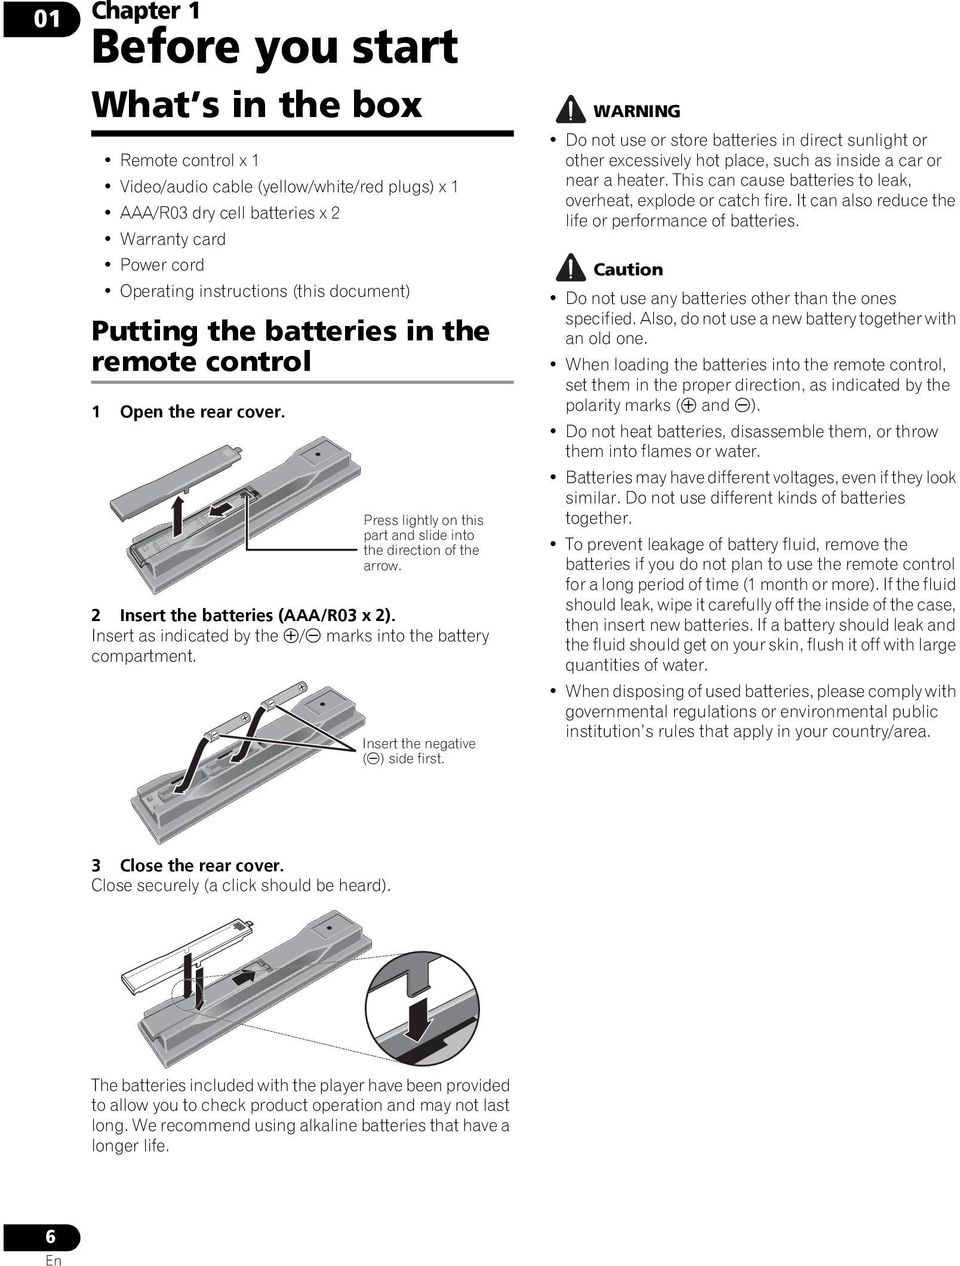 Insert as indicated by the / marks into the battery compartment. Insert the negative ( ) side first.